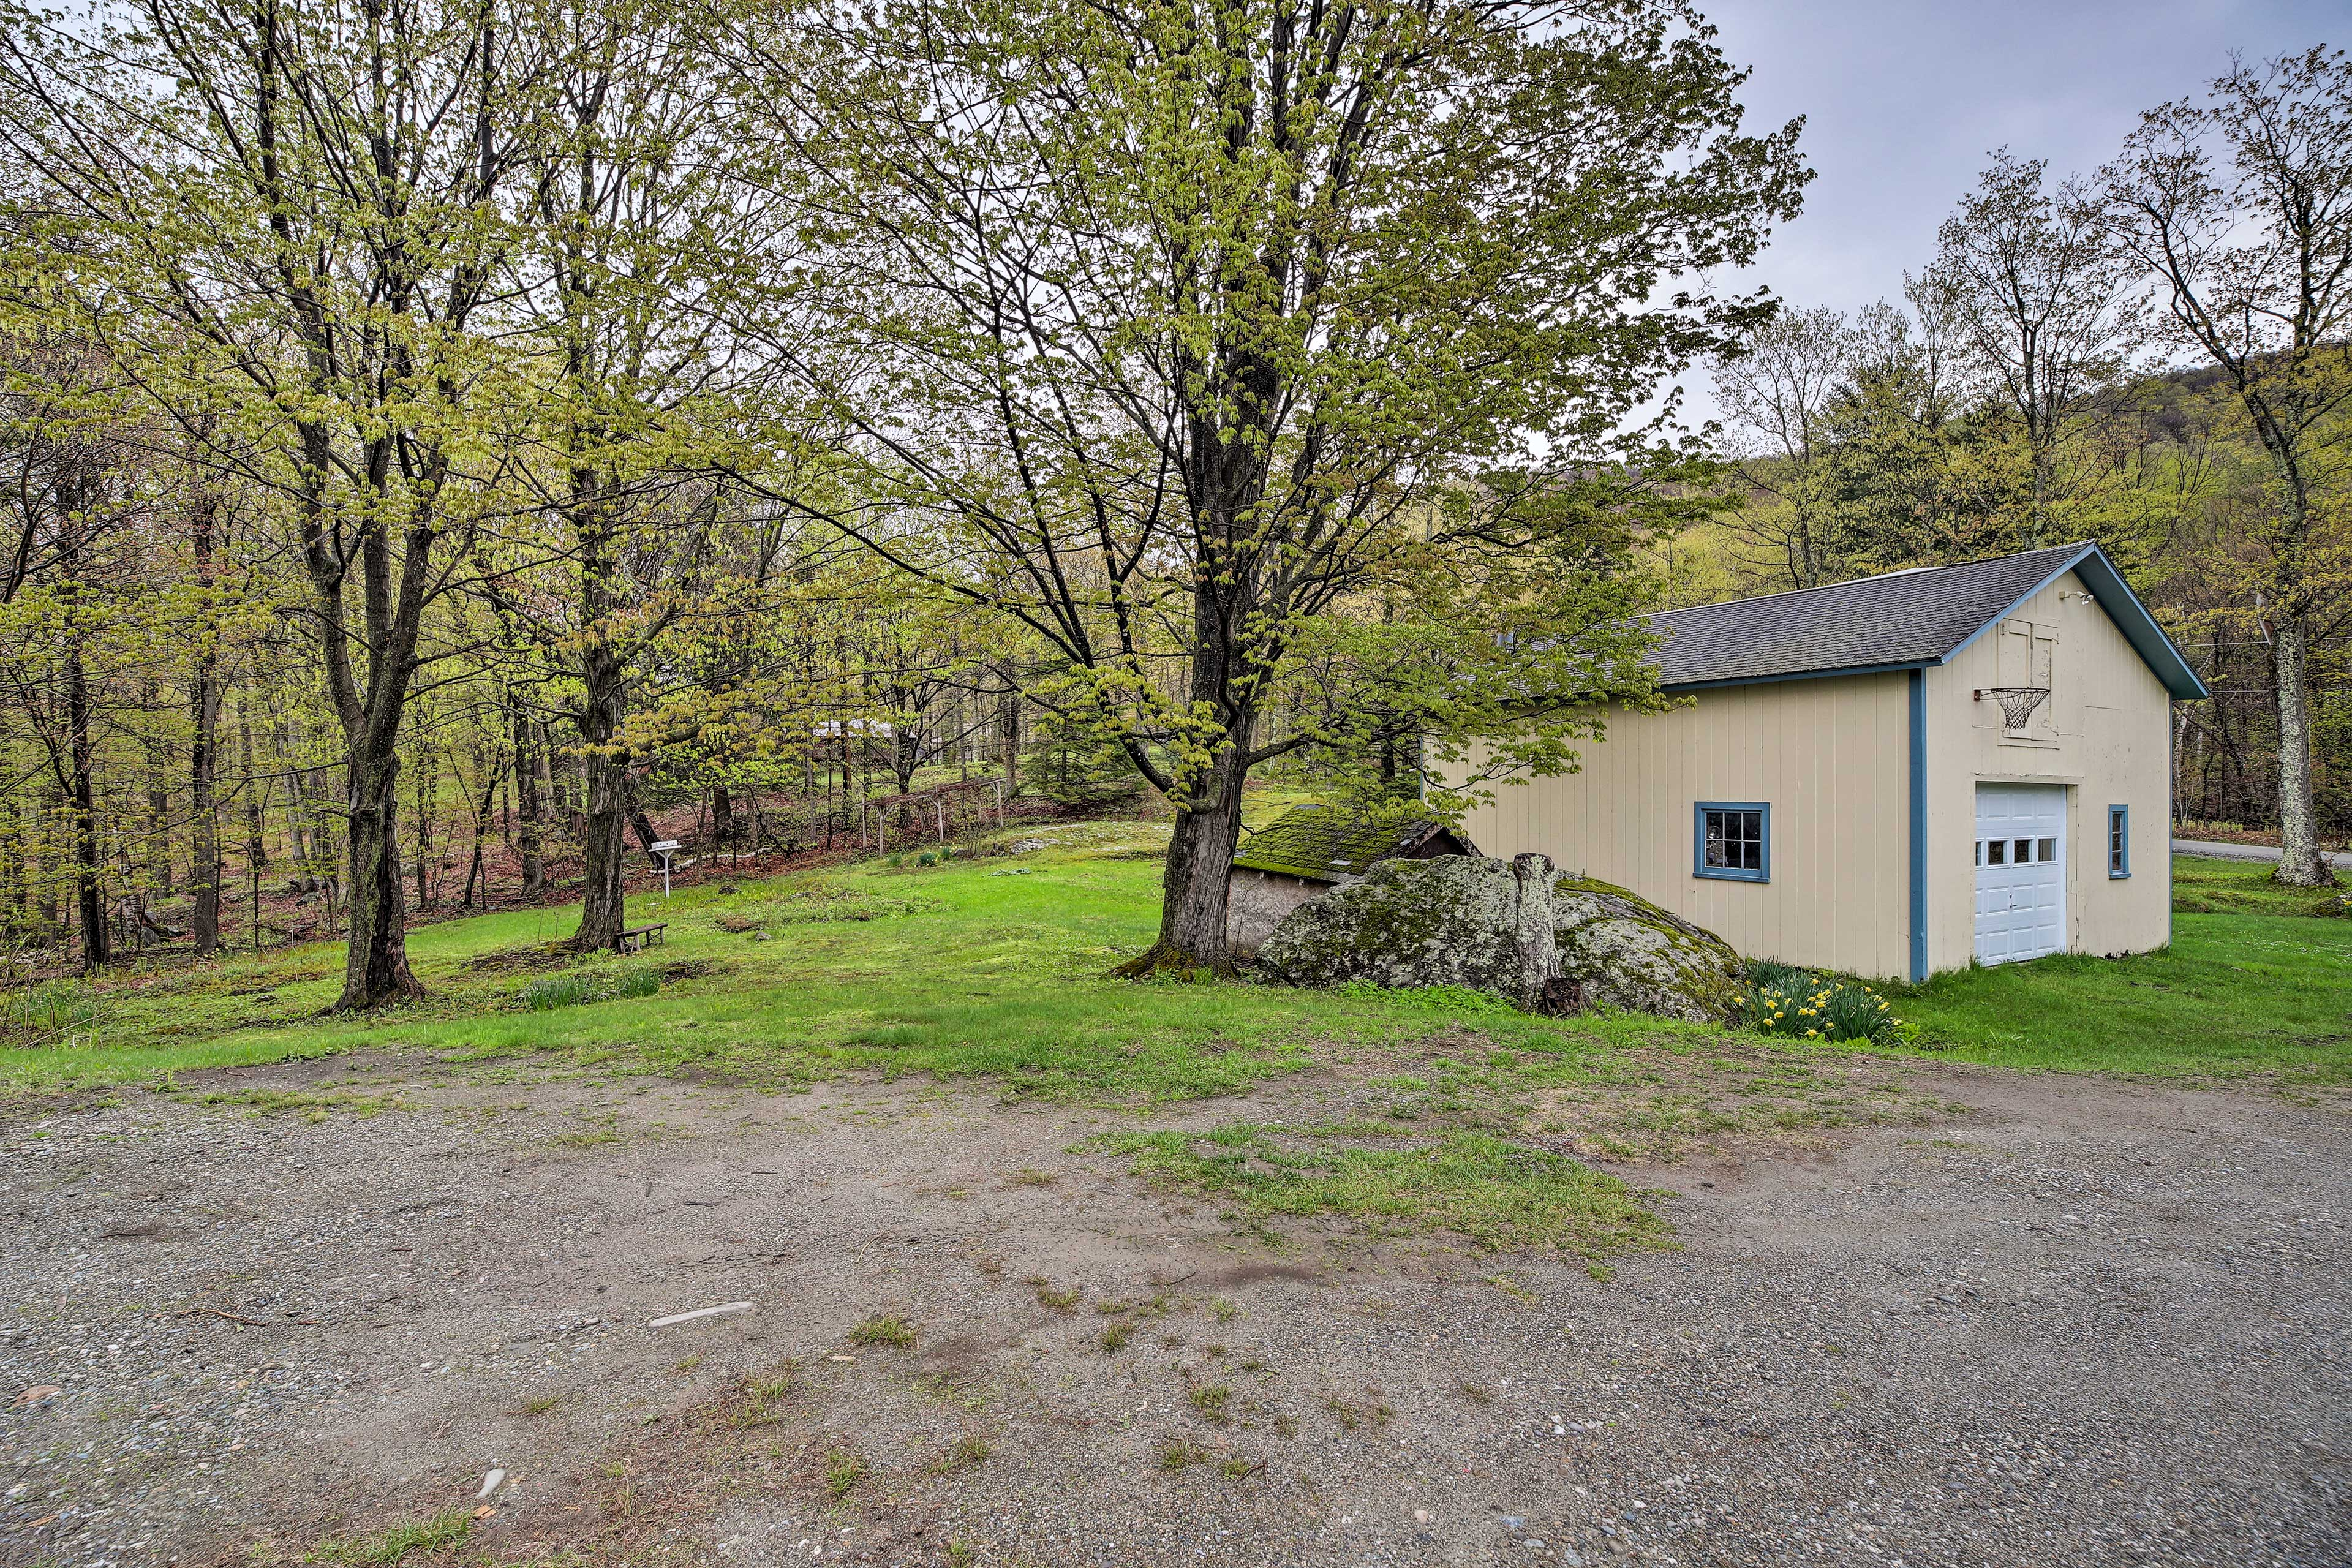 You'll be on a semi-secluded lot surrounded by trees.